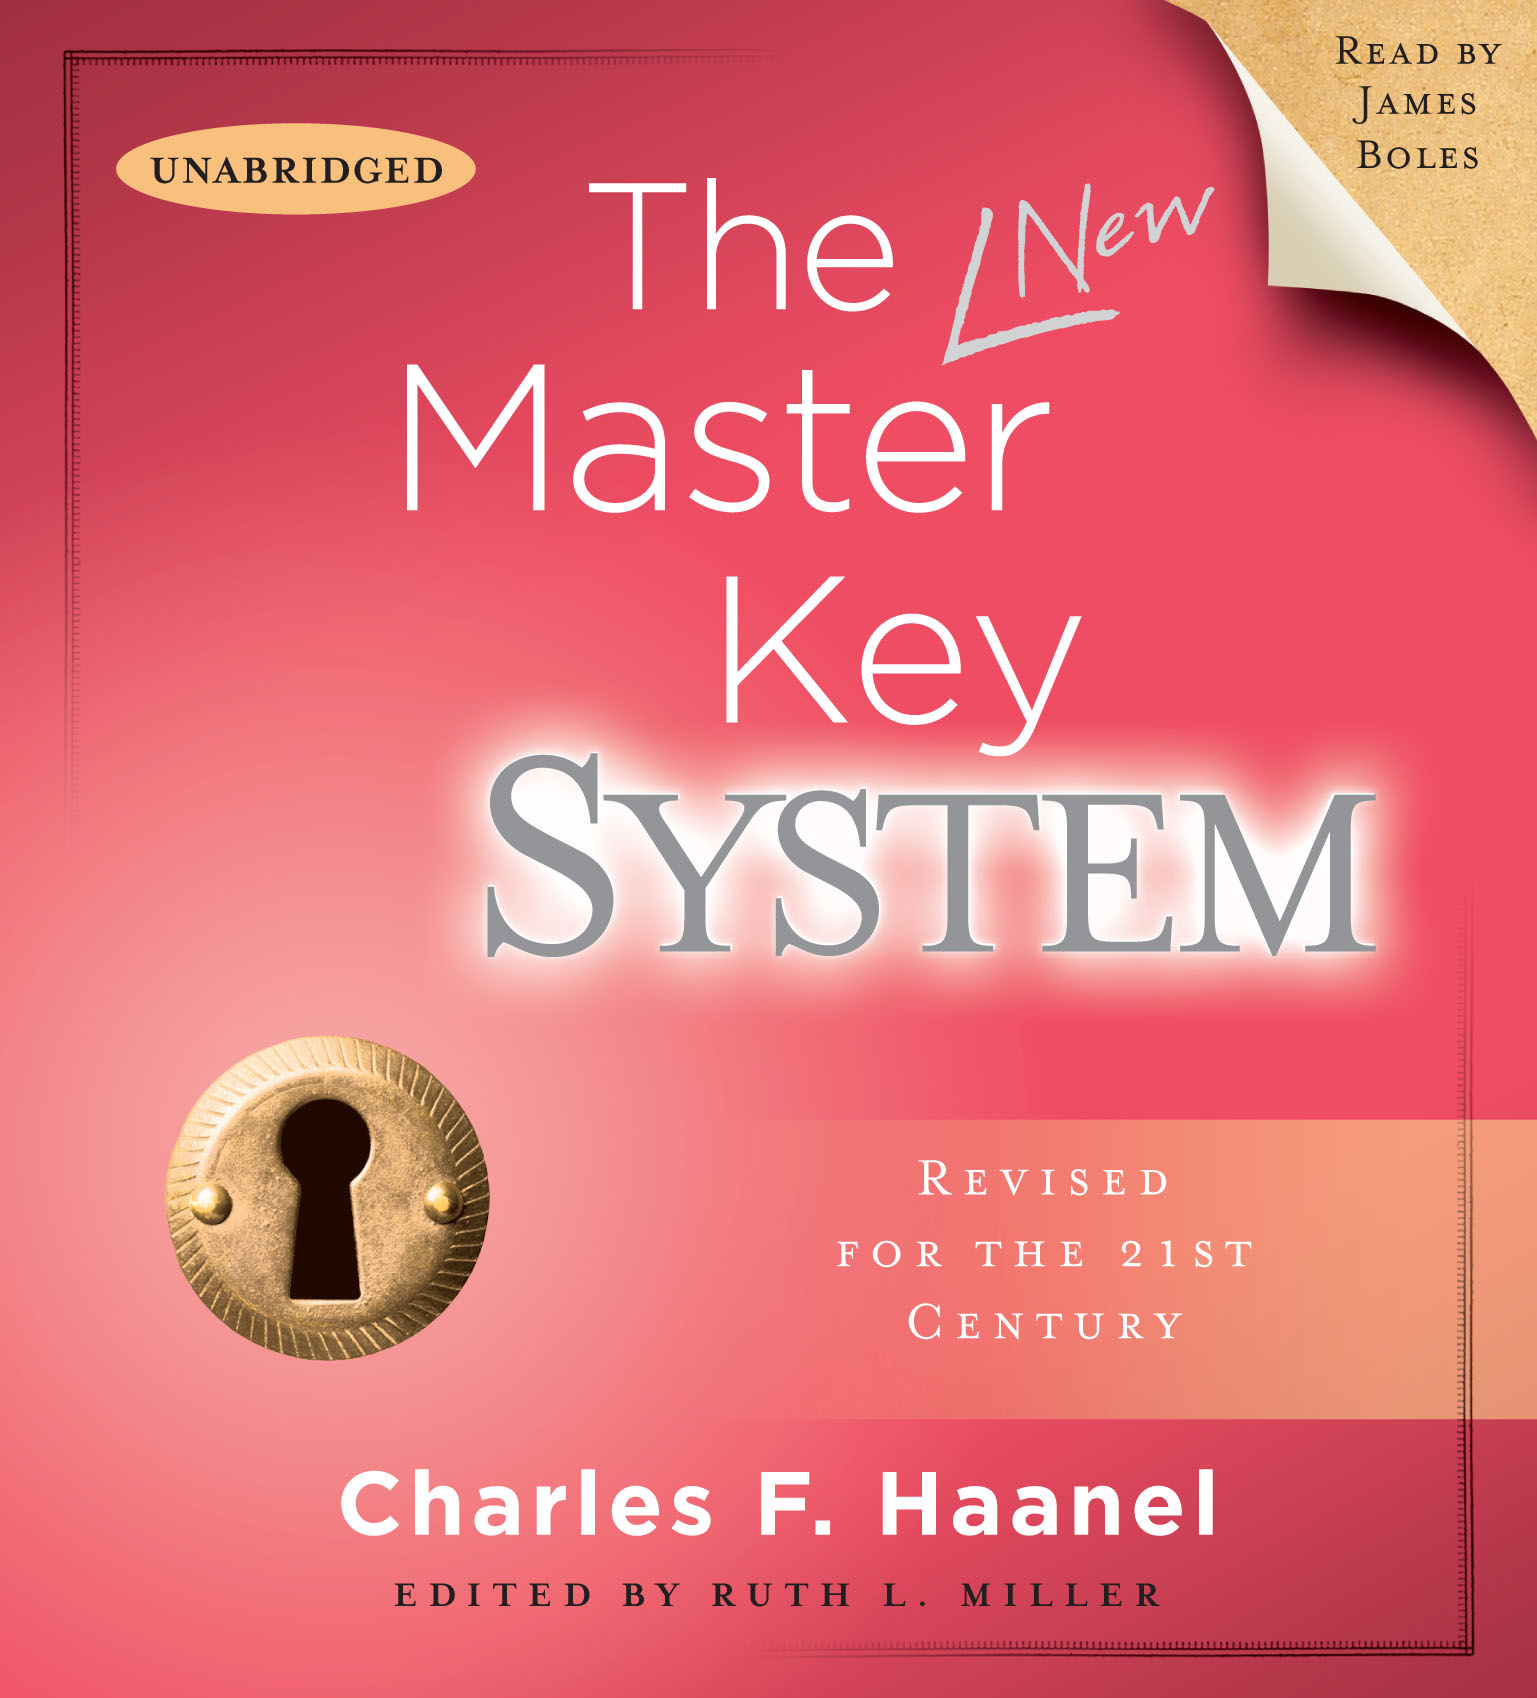 The new psychology charles haanel